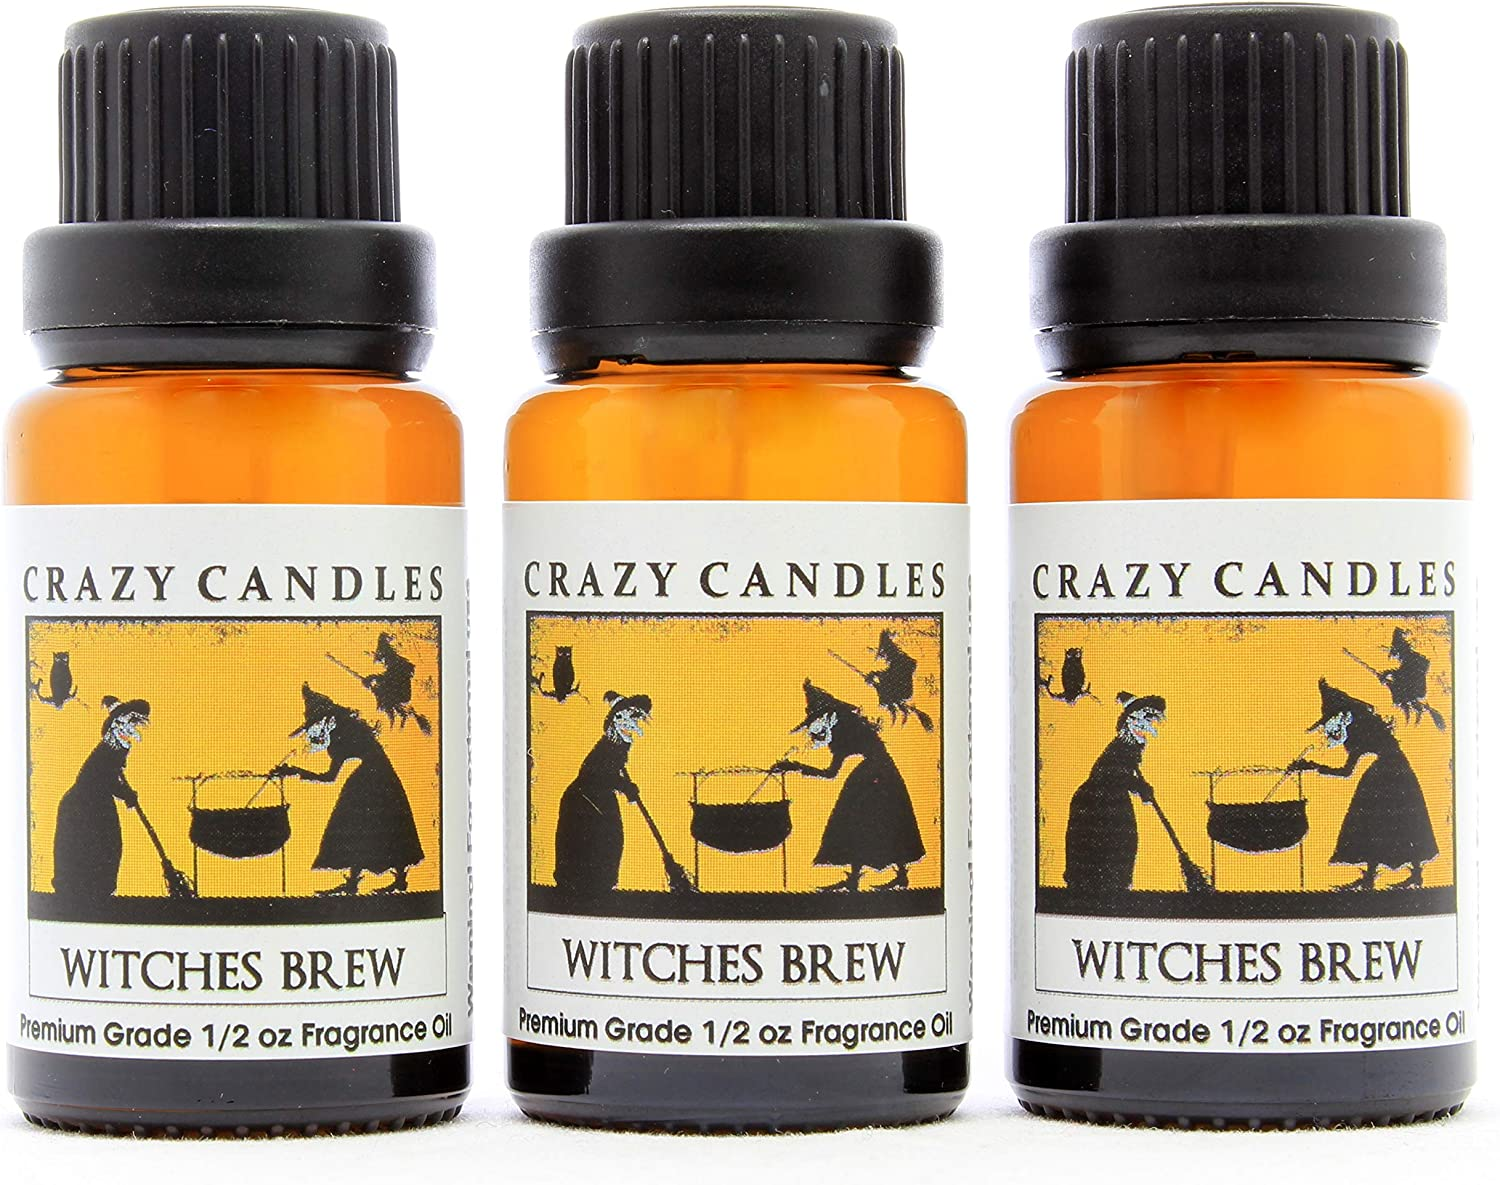 Crazy Candles Witches Brew (Made in USA) 3 Bottles 1/2 Fl Oz Each (15ml) Premium Grade Scented Fragrance Oil